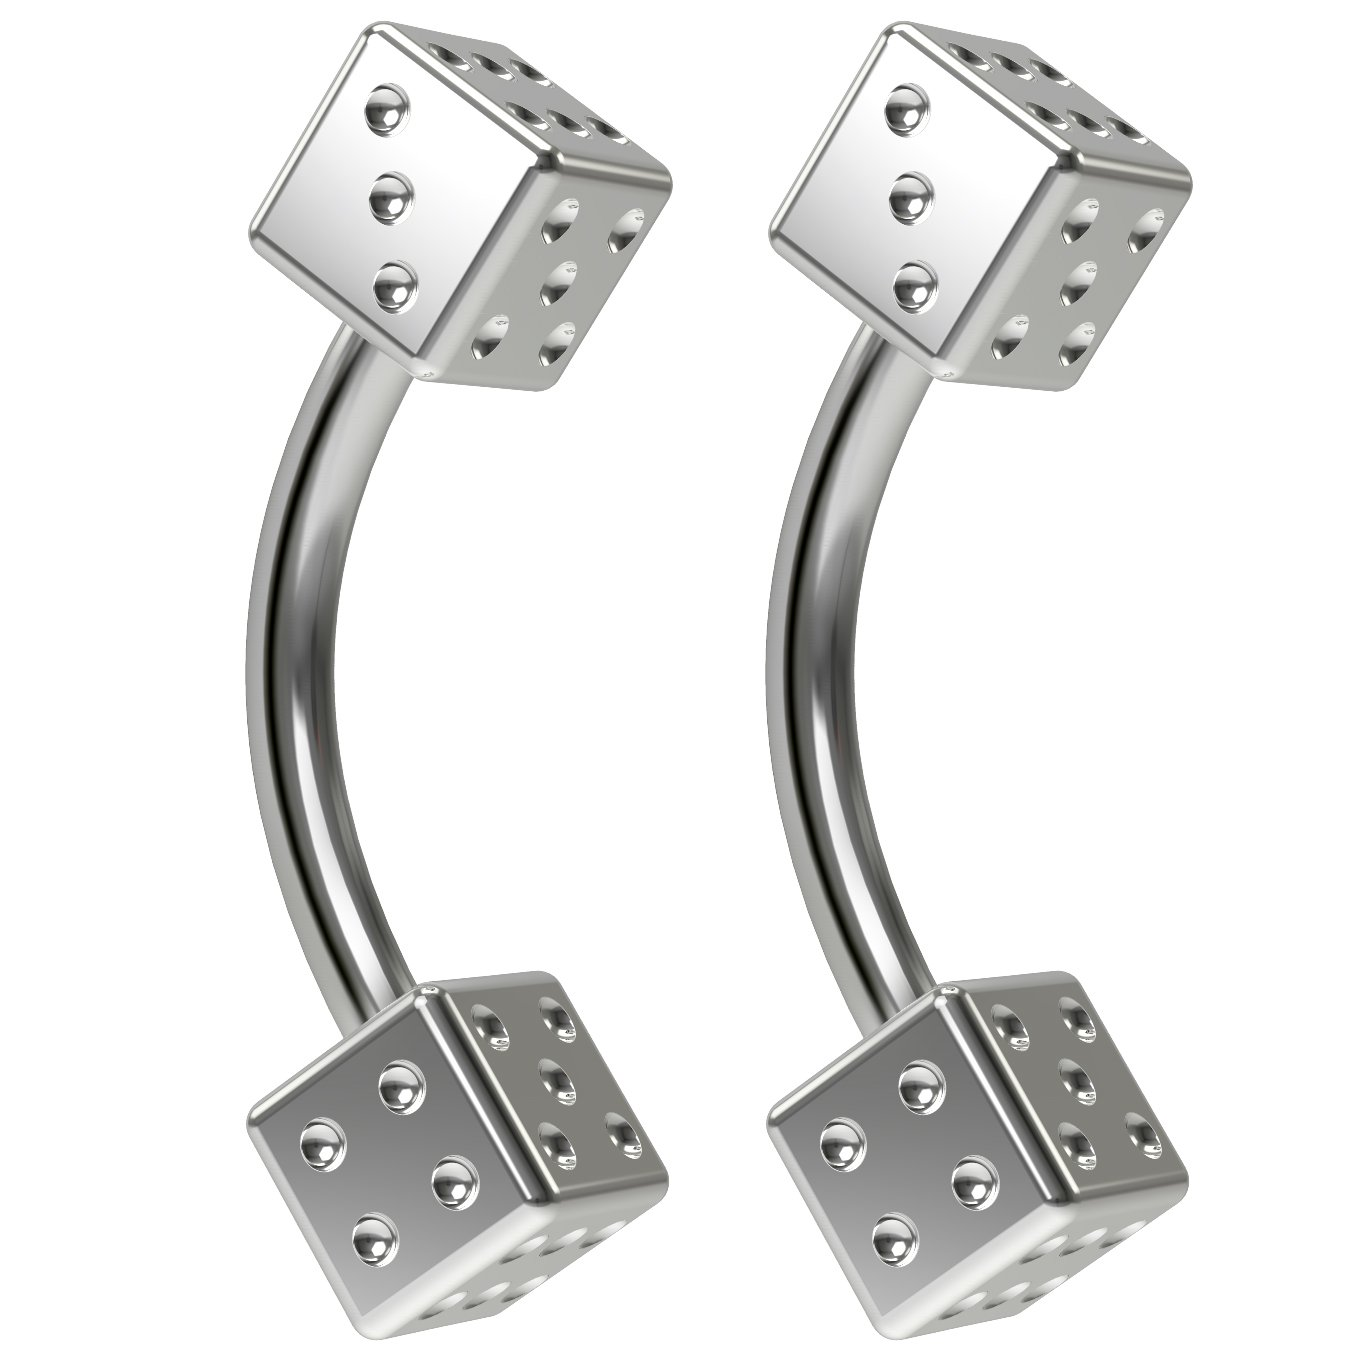 2pc 16g Dice Curved Barbell 5//16 8mm Bar Cool Novelty Cute Earrings Cartilage Curve Piercing Jewelry